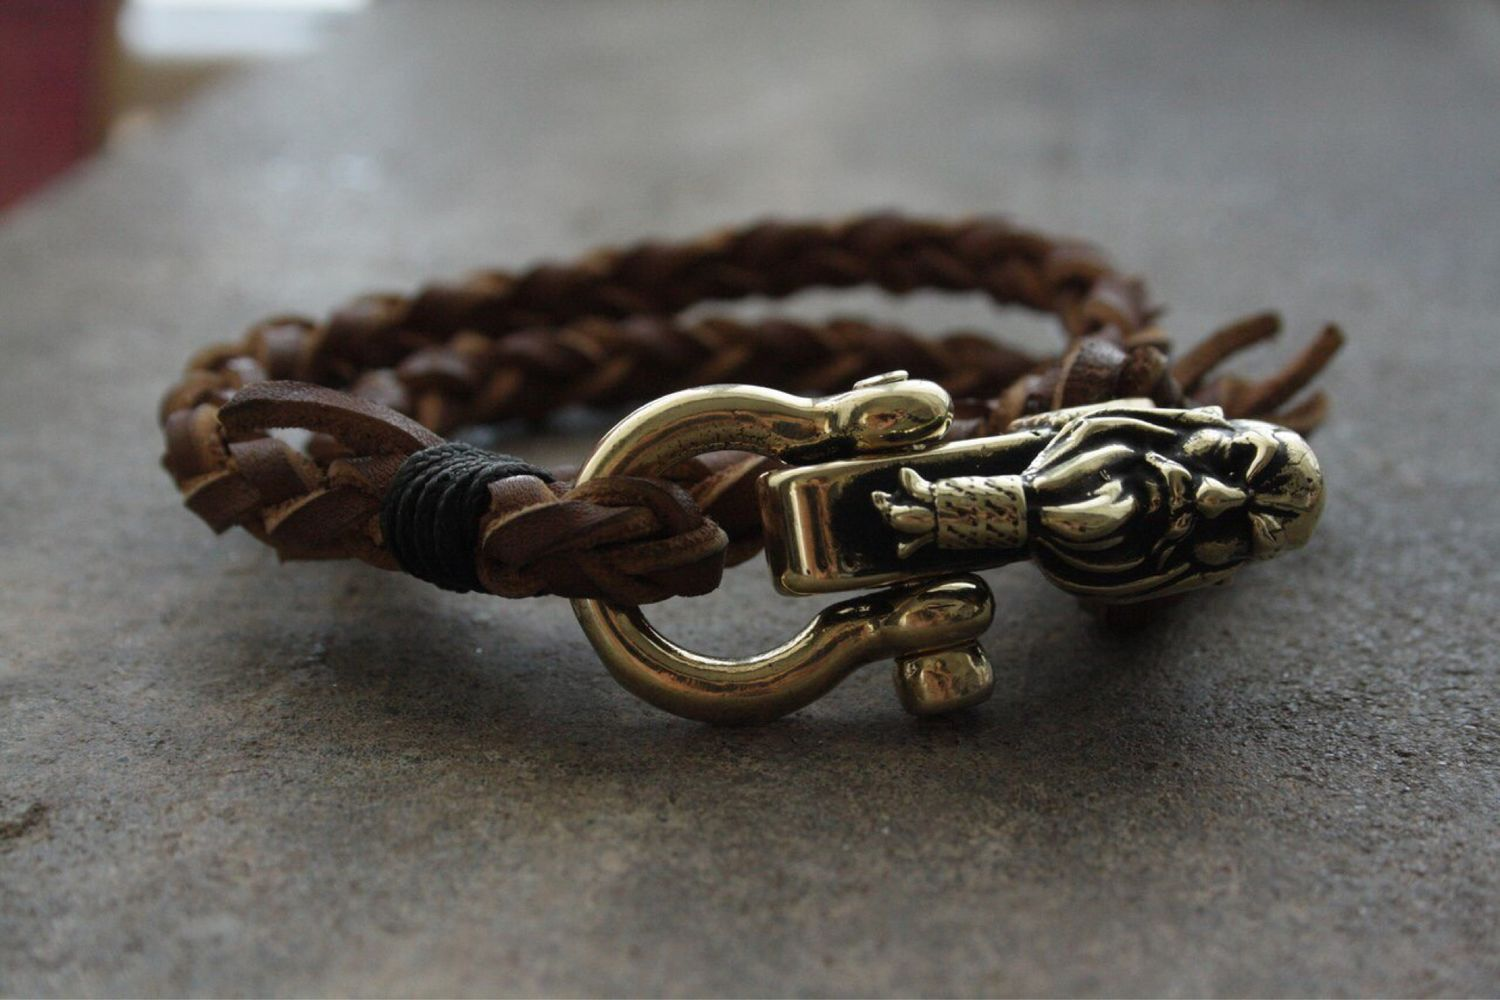 Leather Bracelet Viking Shop Online On Livemaster With Shipping